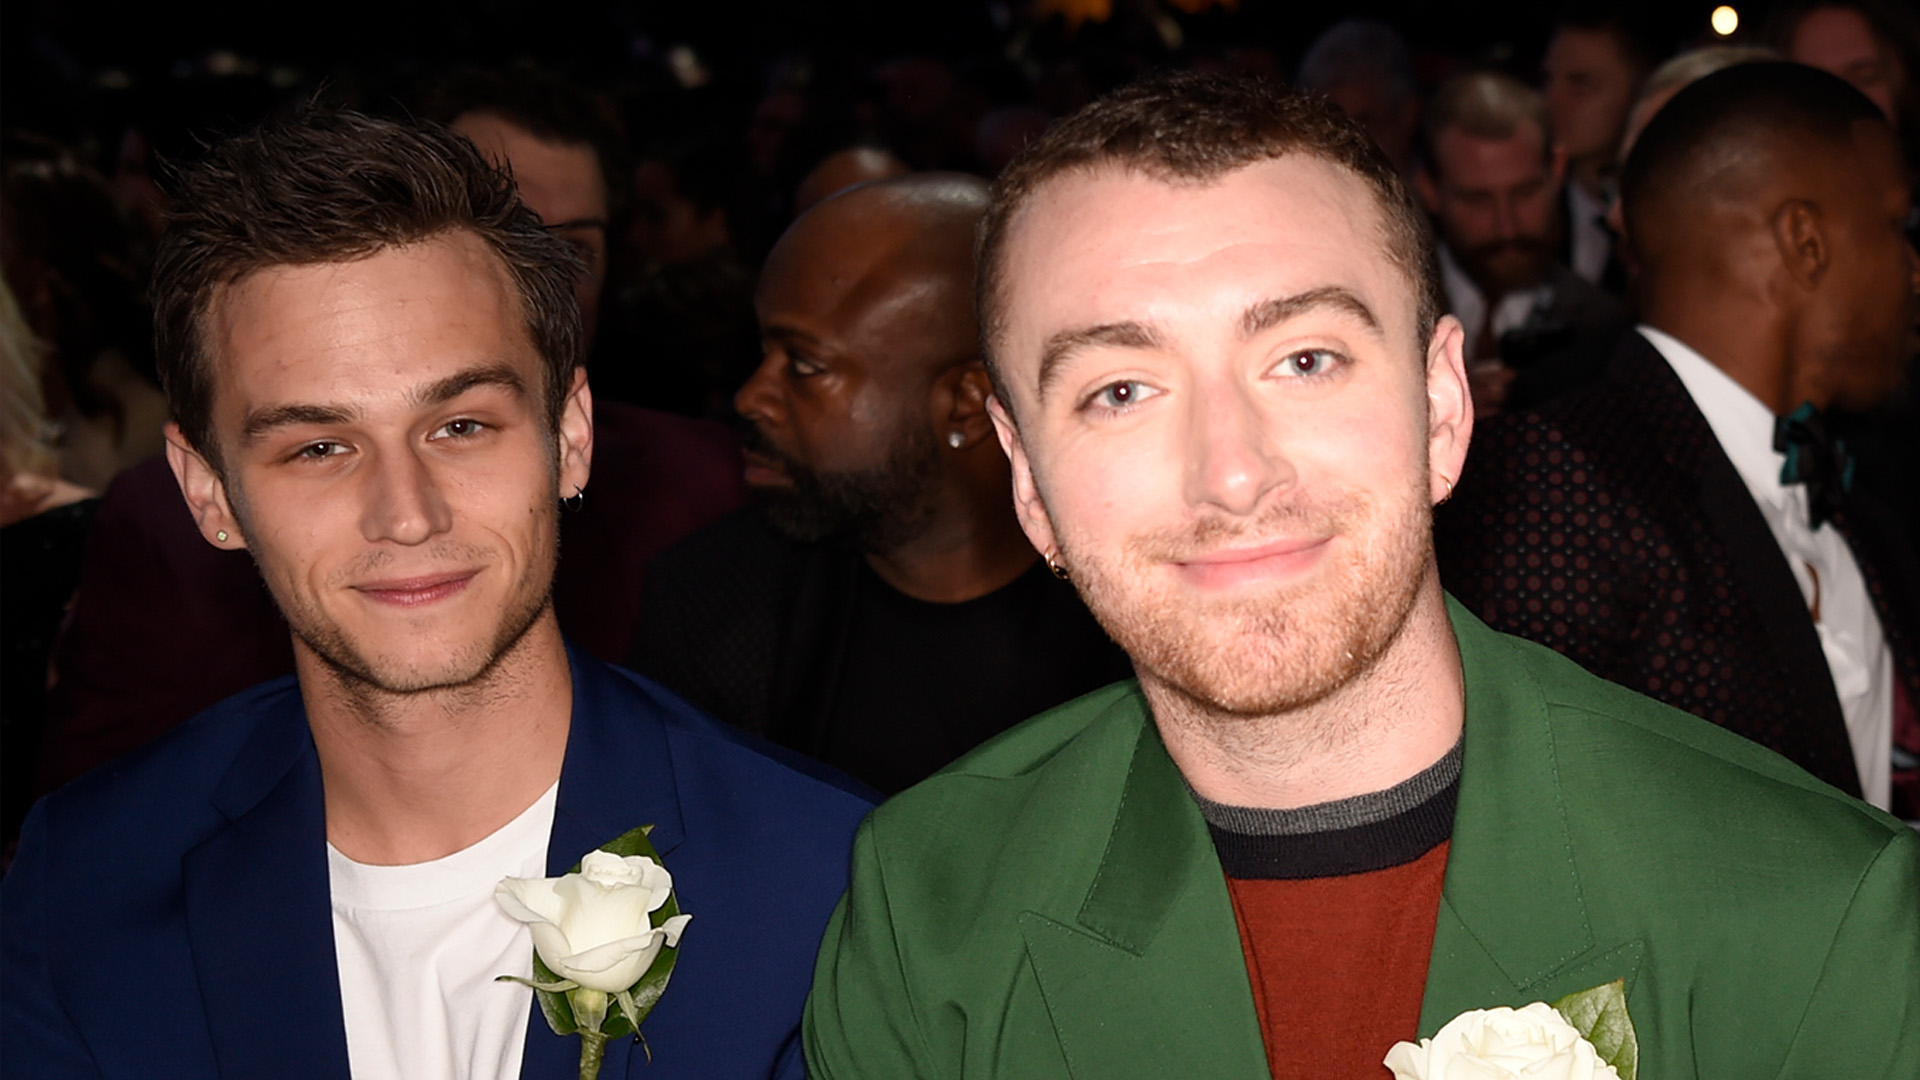 Sam Smith, who performed a rousing rendition of his single